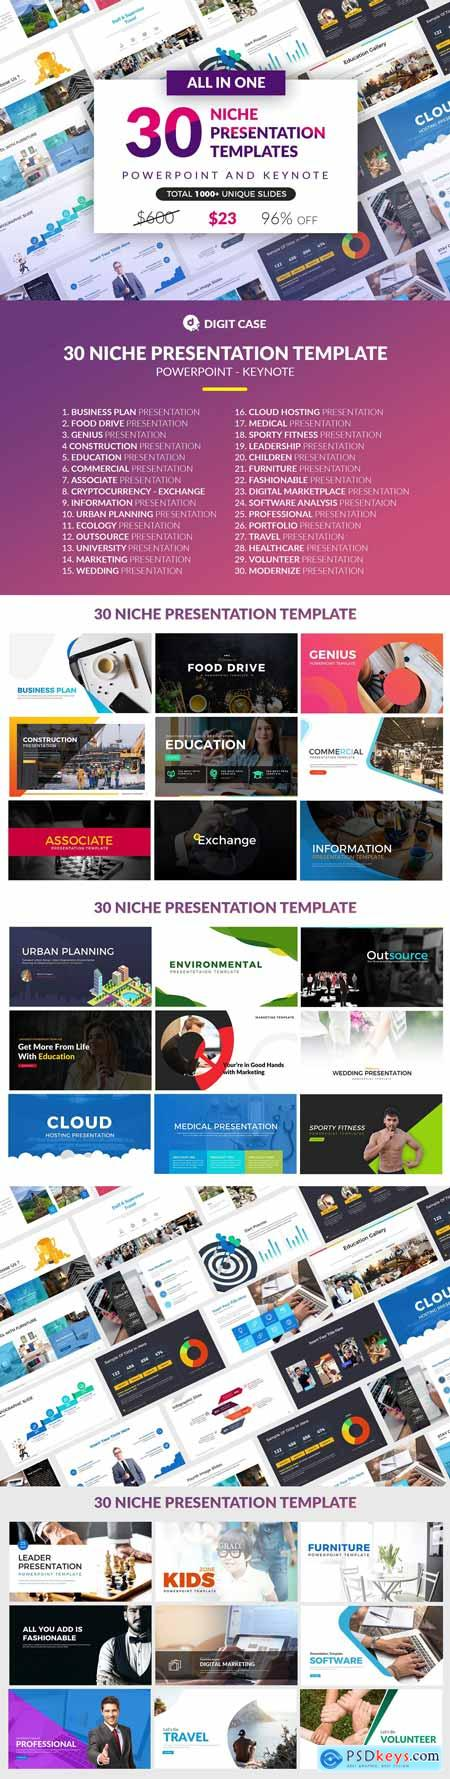 All In One 30 Presentation Template 3371879